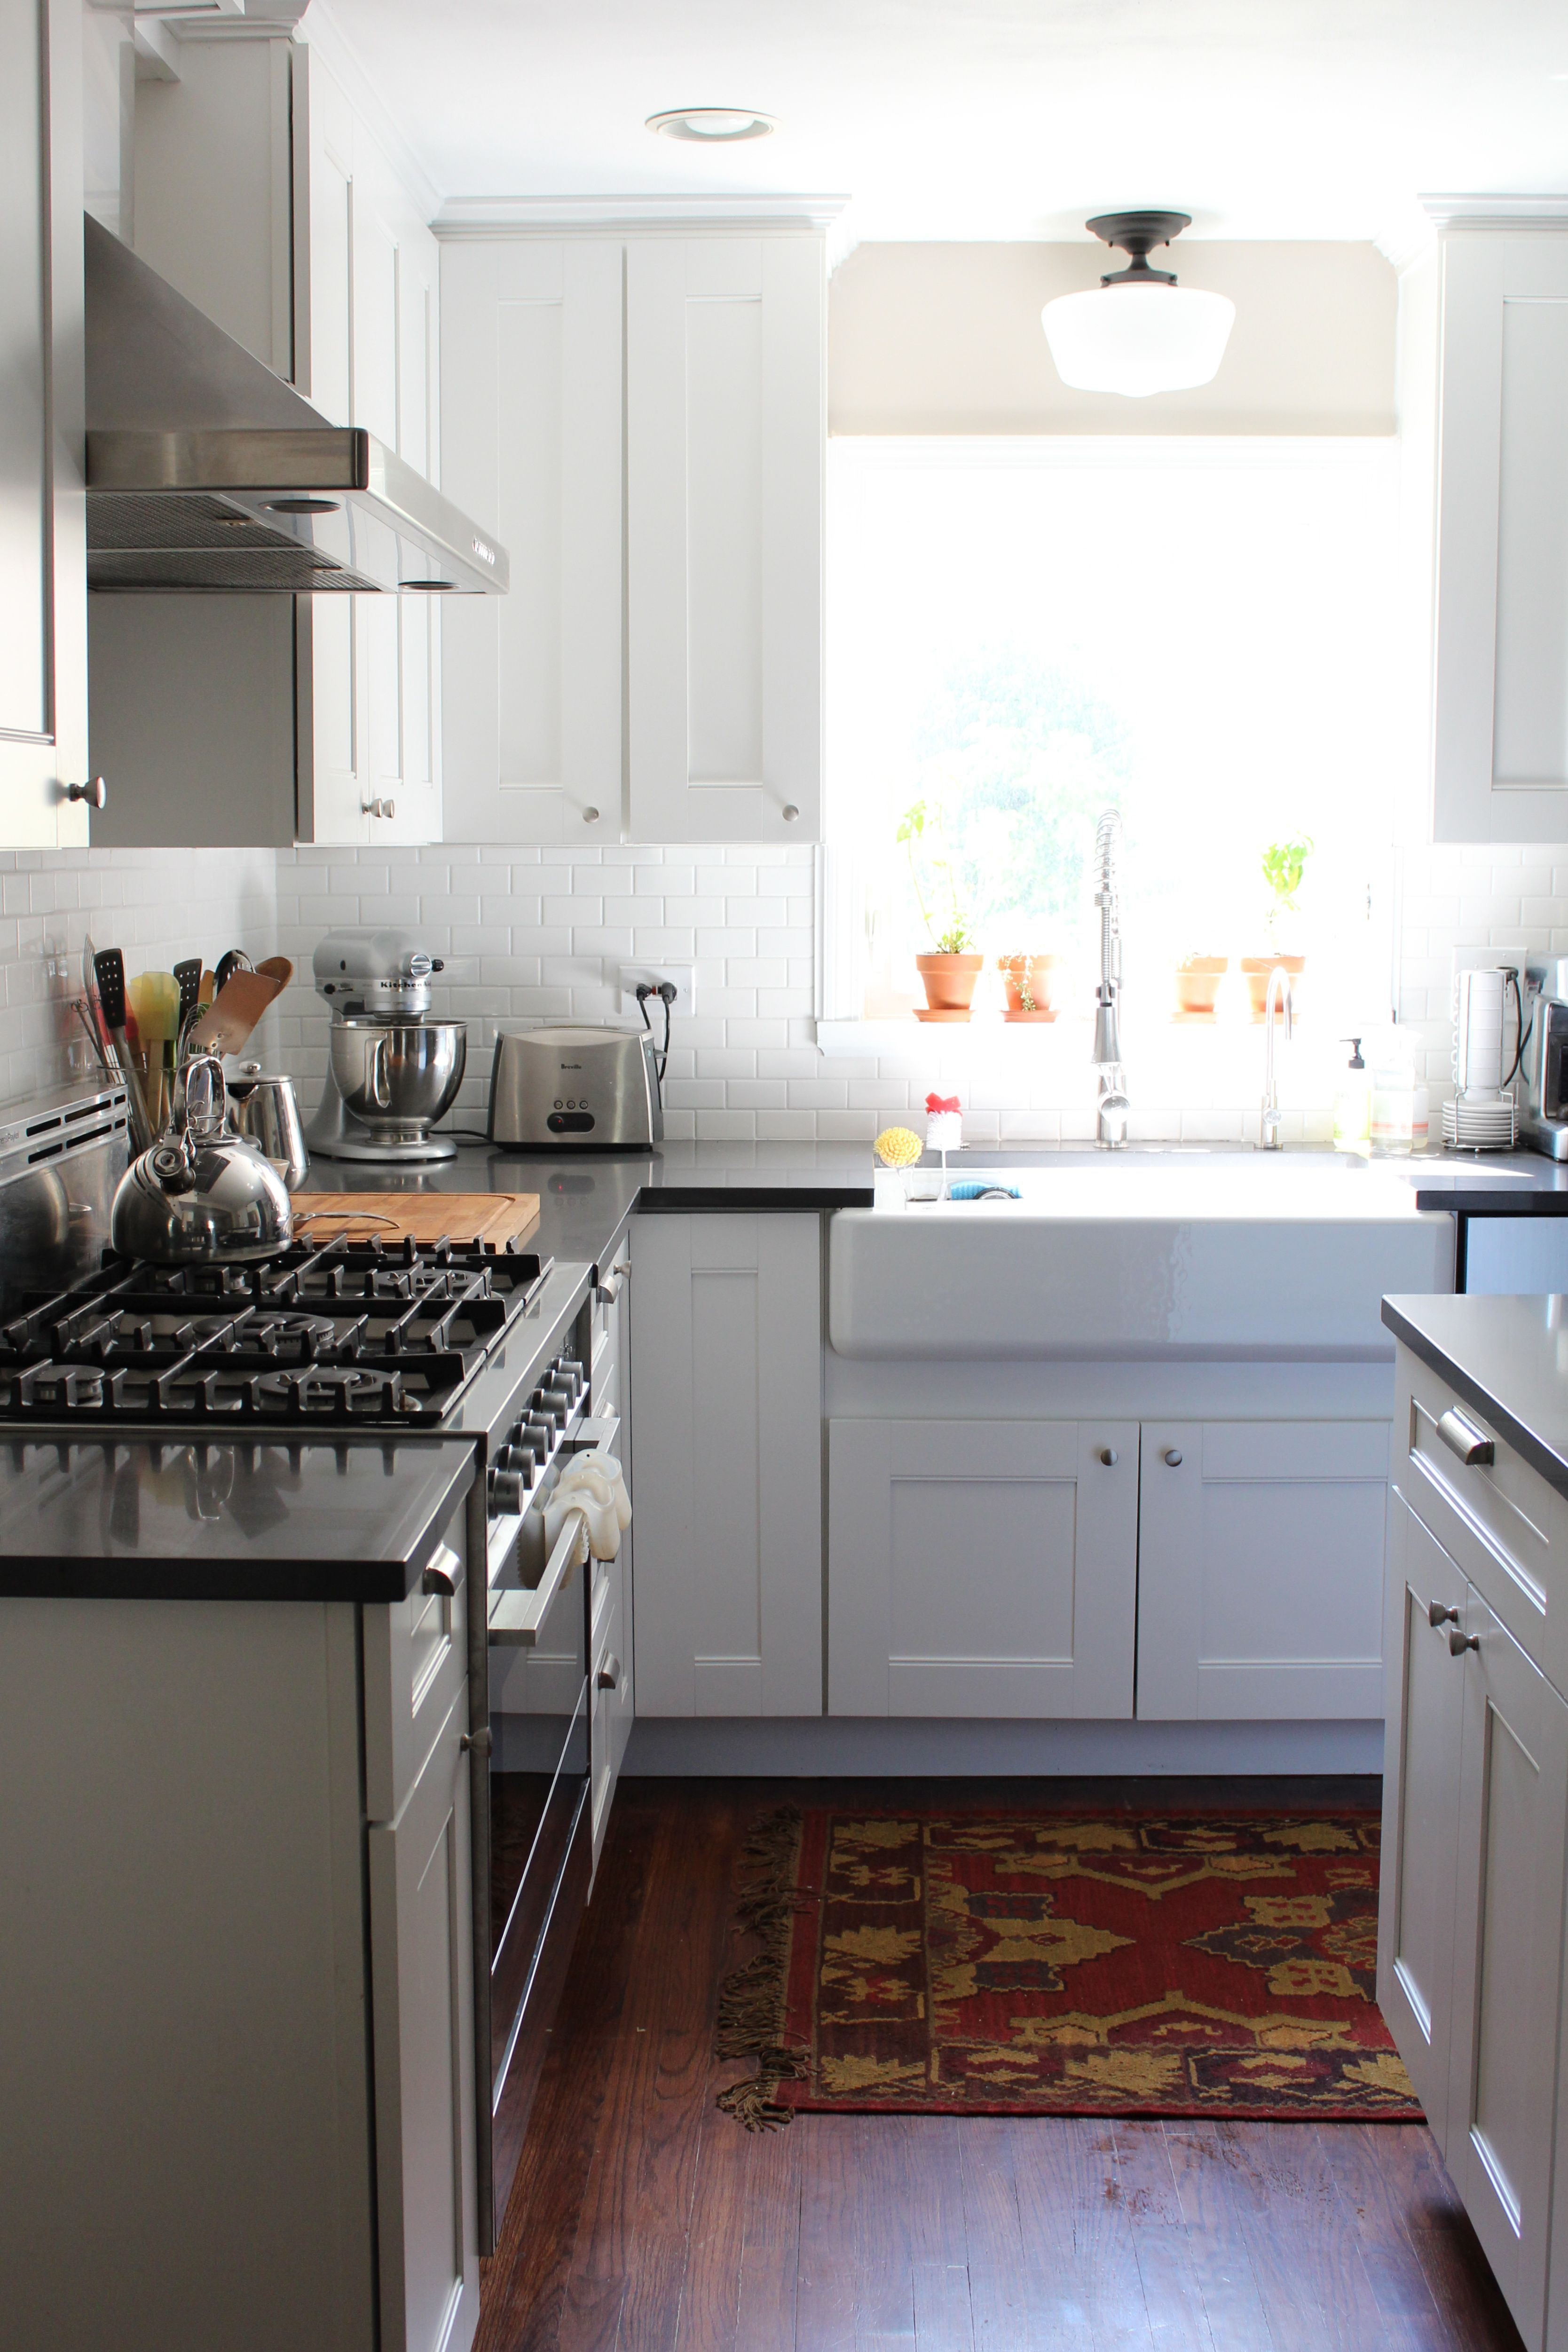 unfinished improvements elegant kitchens best depot martha reviews kitchen stewart refference home house pine at of cabinets